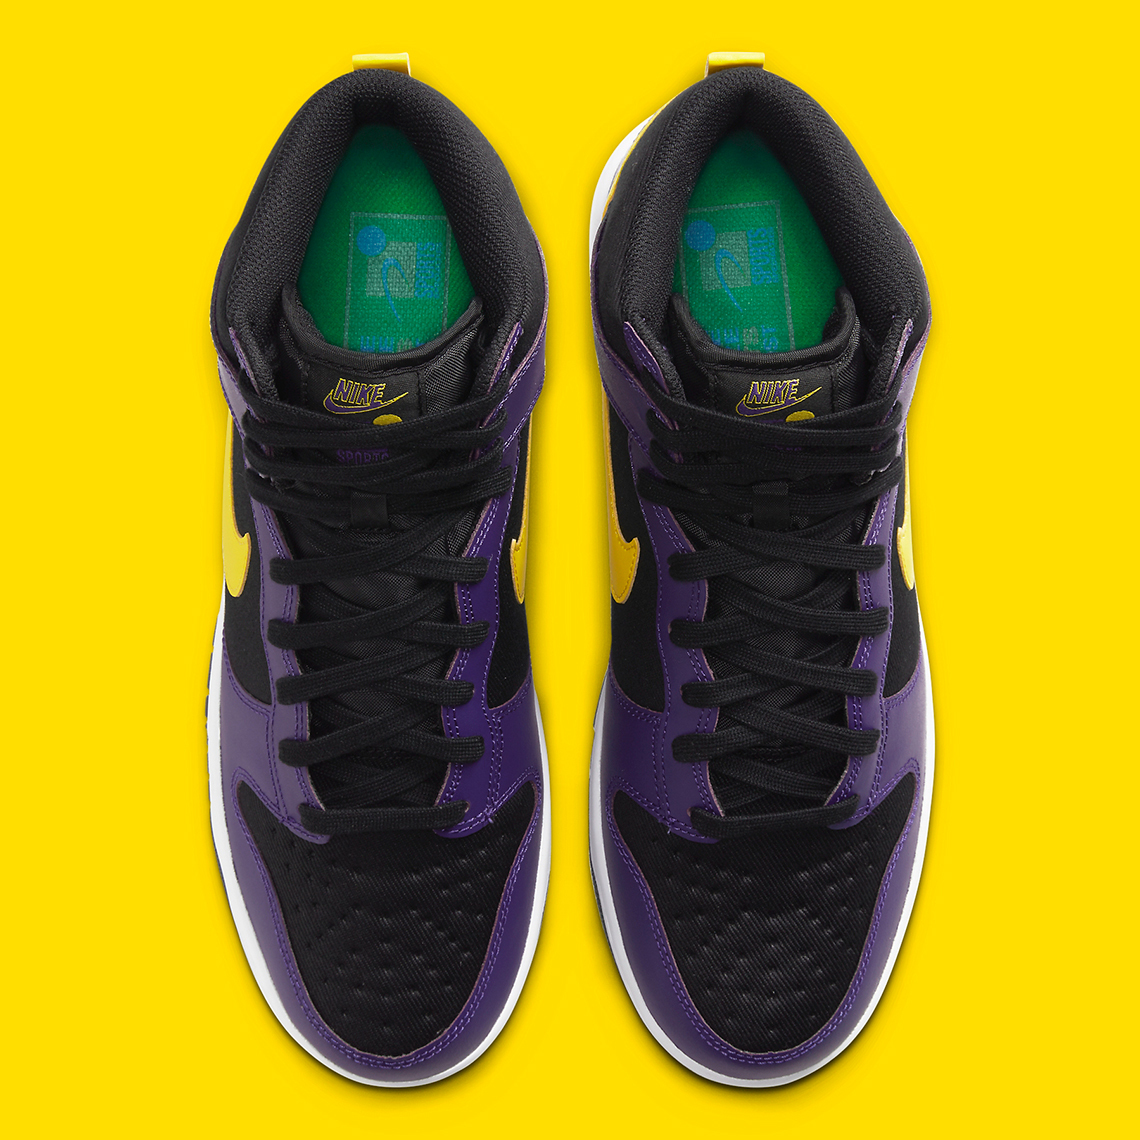 Nike Dunk High EMB ''Lakers'' - DH0642-001